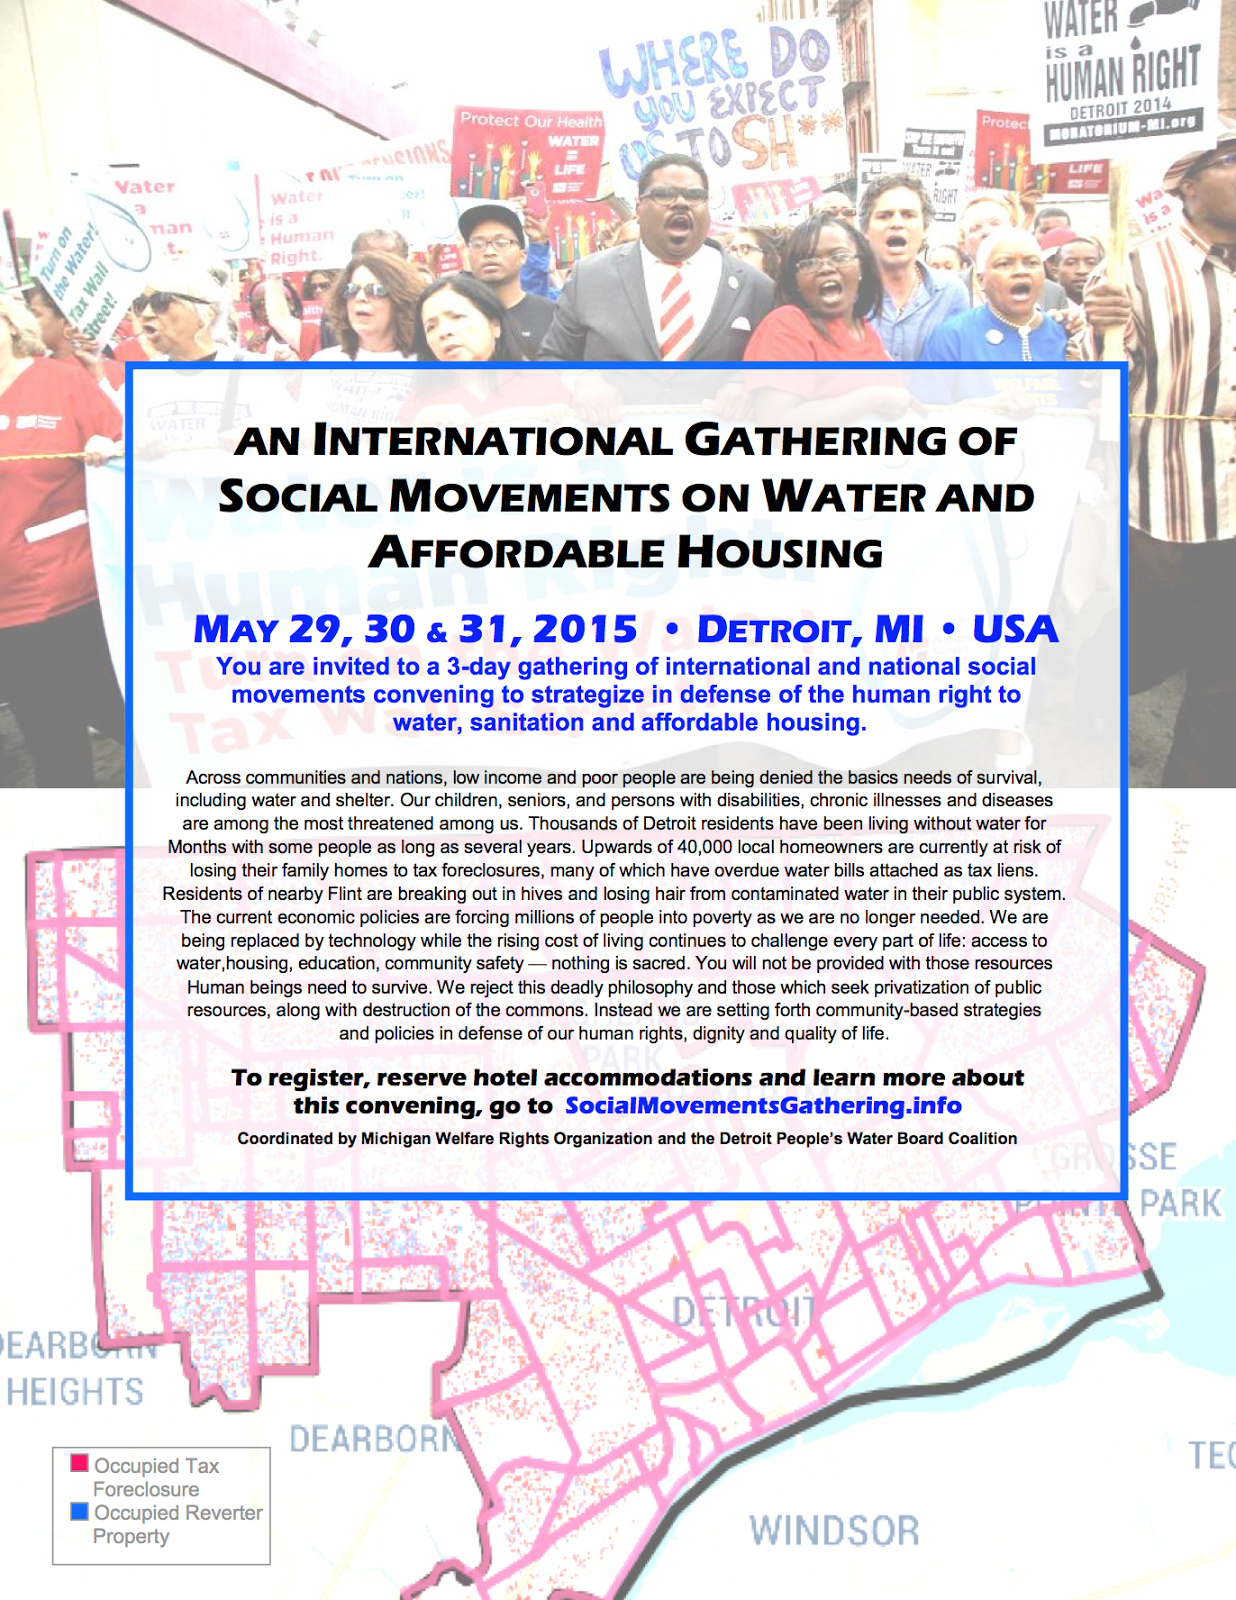 Flyer for water and housing gathering in Detroit